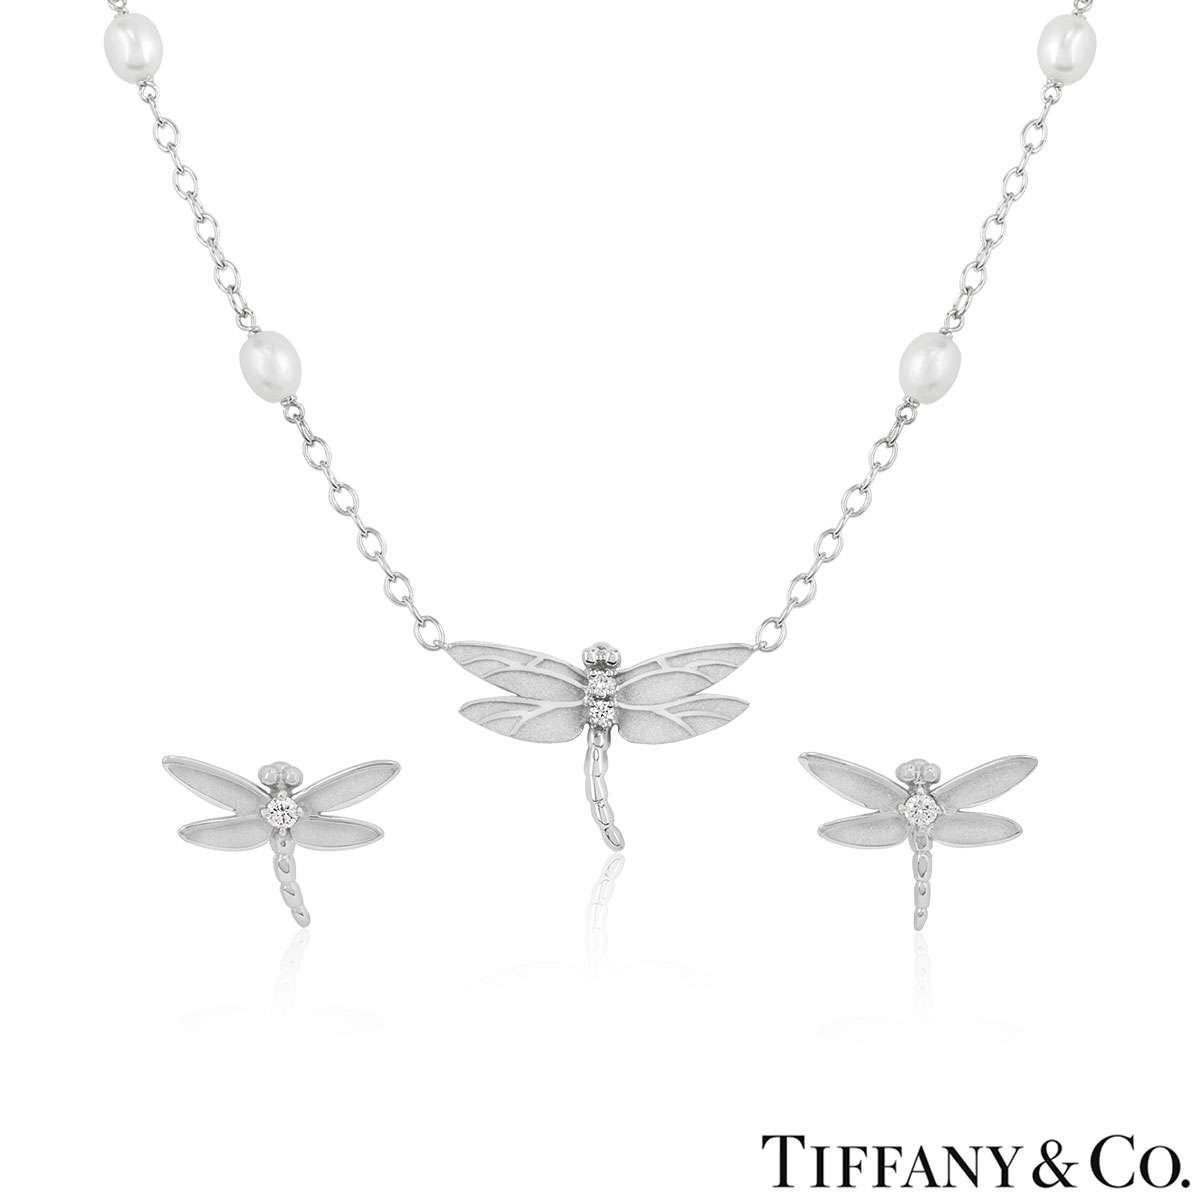 Tiffany & Co. White Gold Diamond Dragonfly Suite